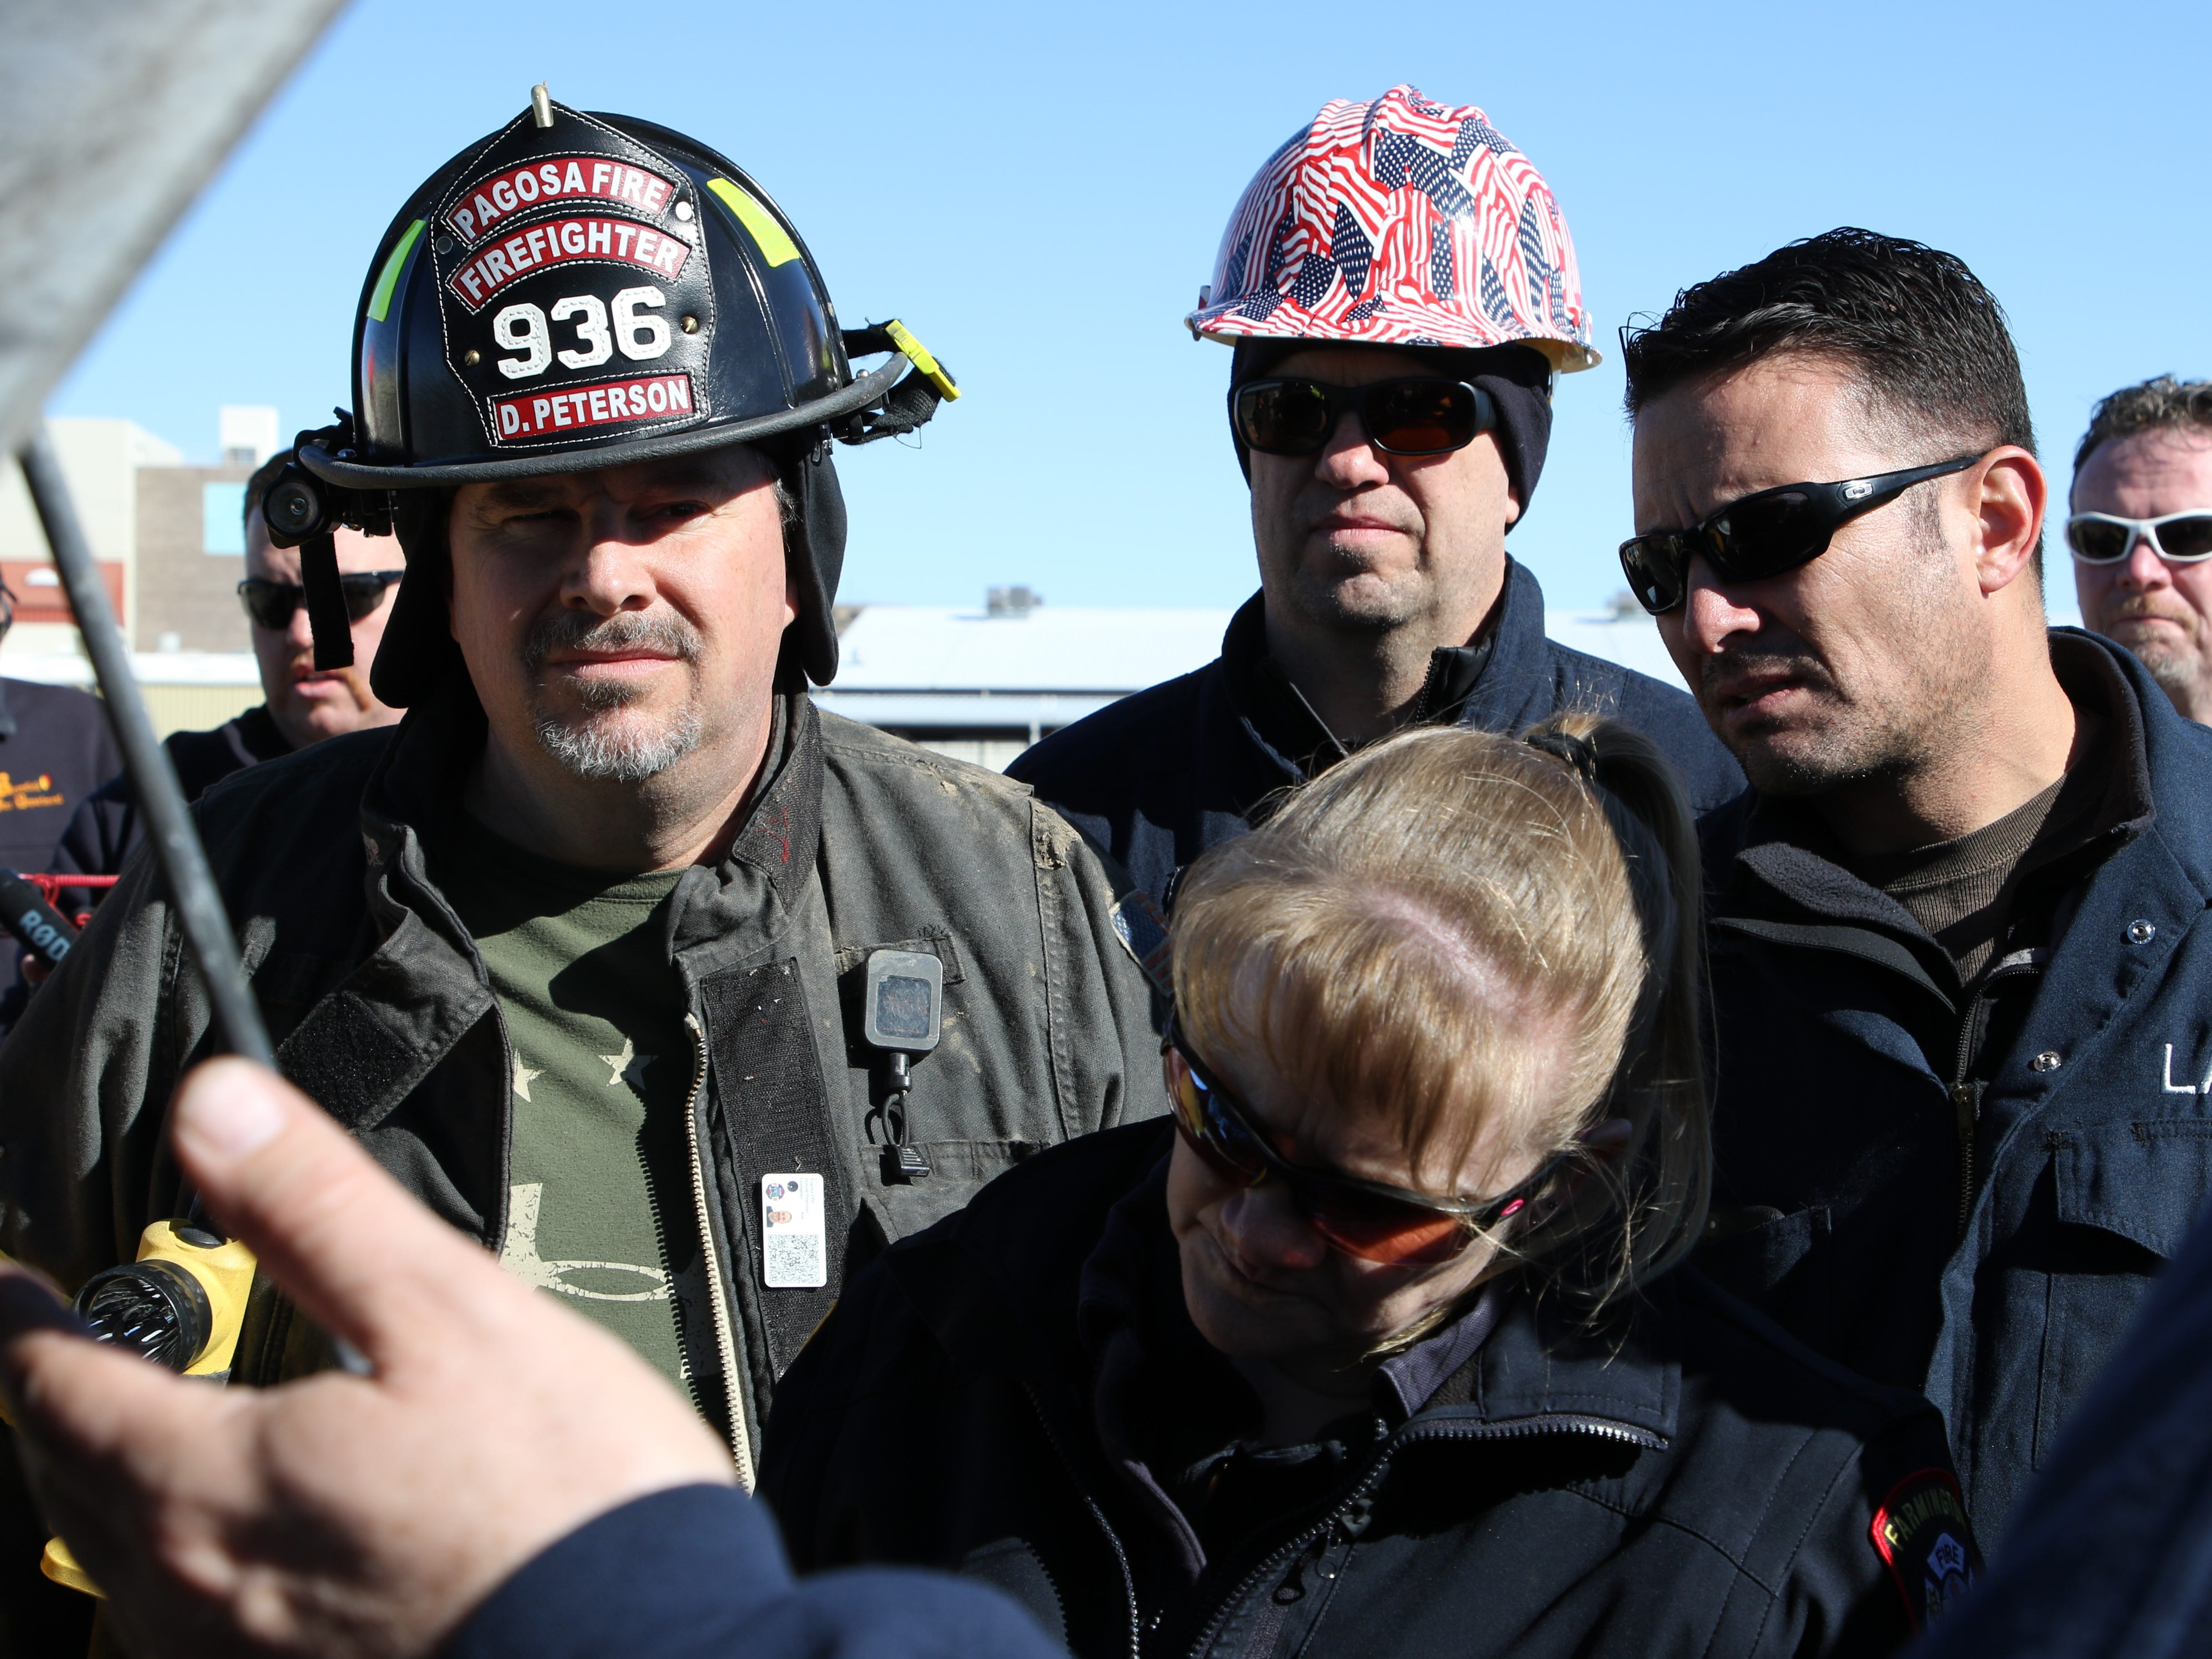 Pagosa Springs Fire Protection District firefighter Don Peterson, left, attended the class to advance his fire investigation skills.